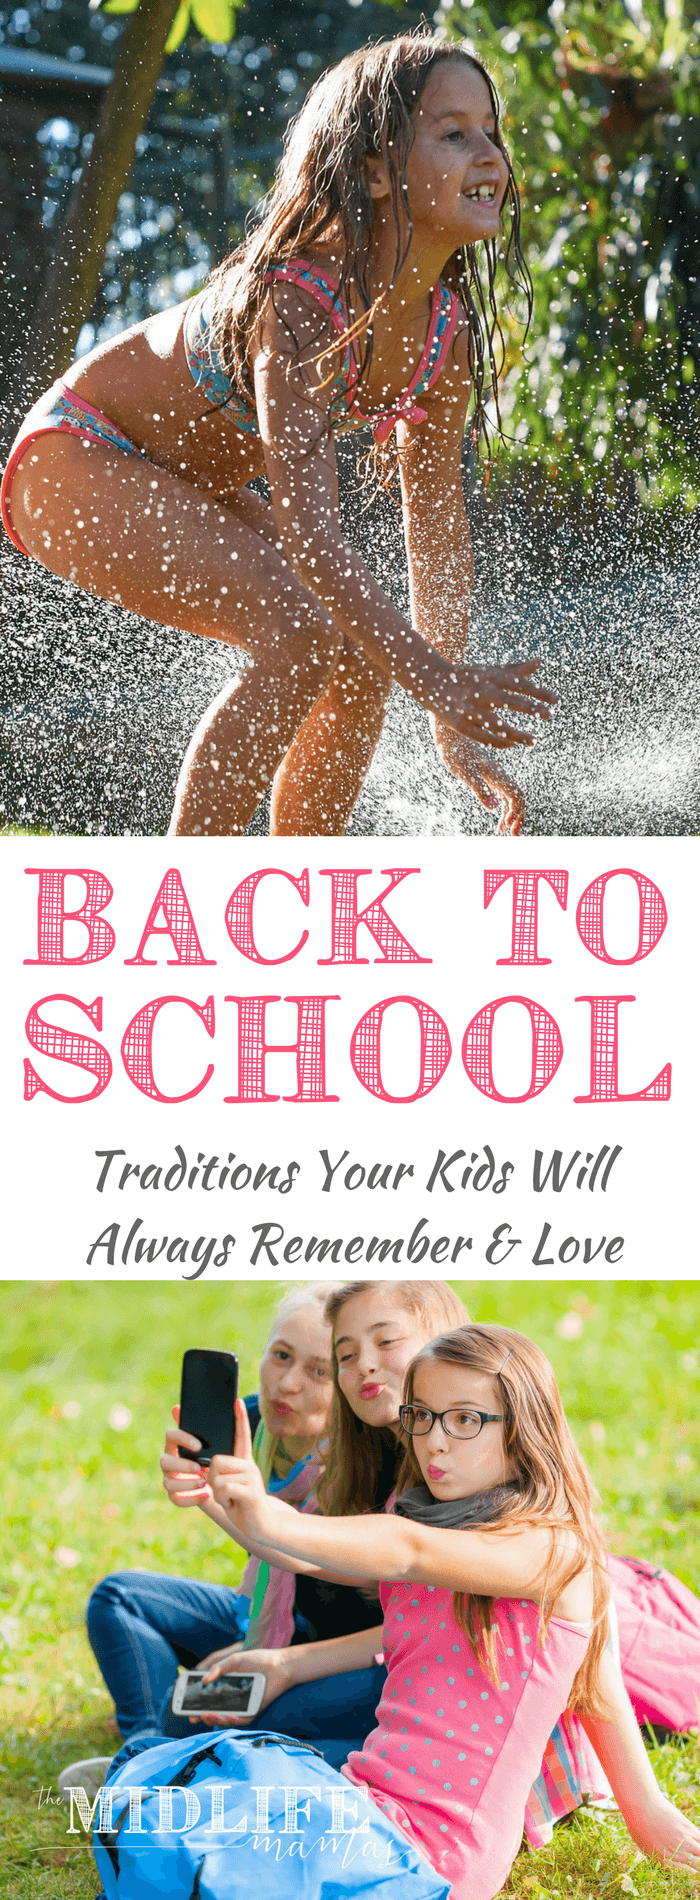 After you've slogged through all the back to school ideas, hacks, and essentials, it's time to throw the kids a party they will never forget! Go shopping, grab some quick snacks, and invite all their friends over to celebrate going back to school in style. And don't forget the pictures!!! #backtoschool #party